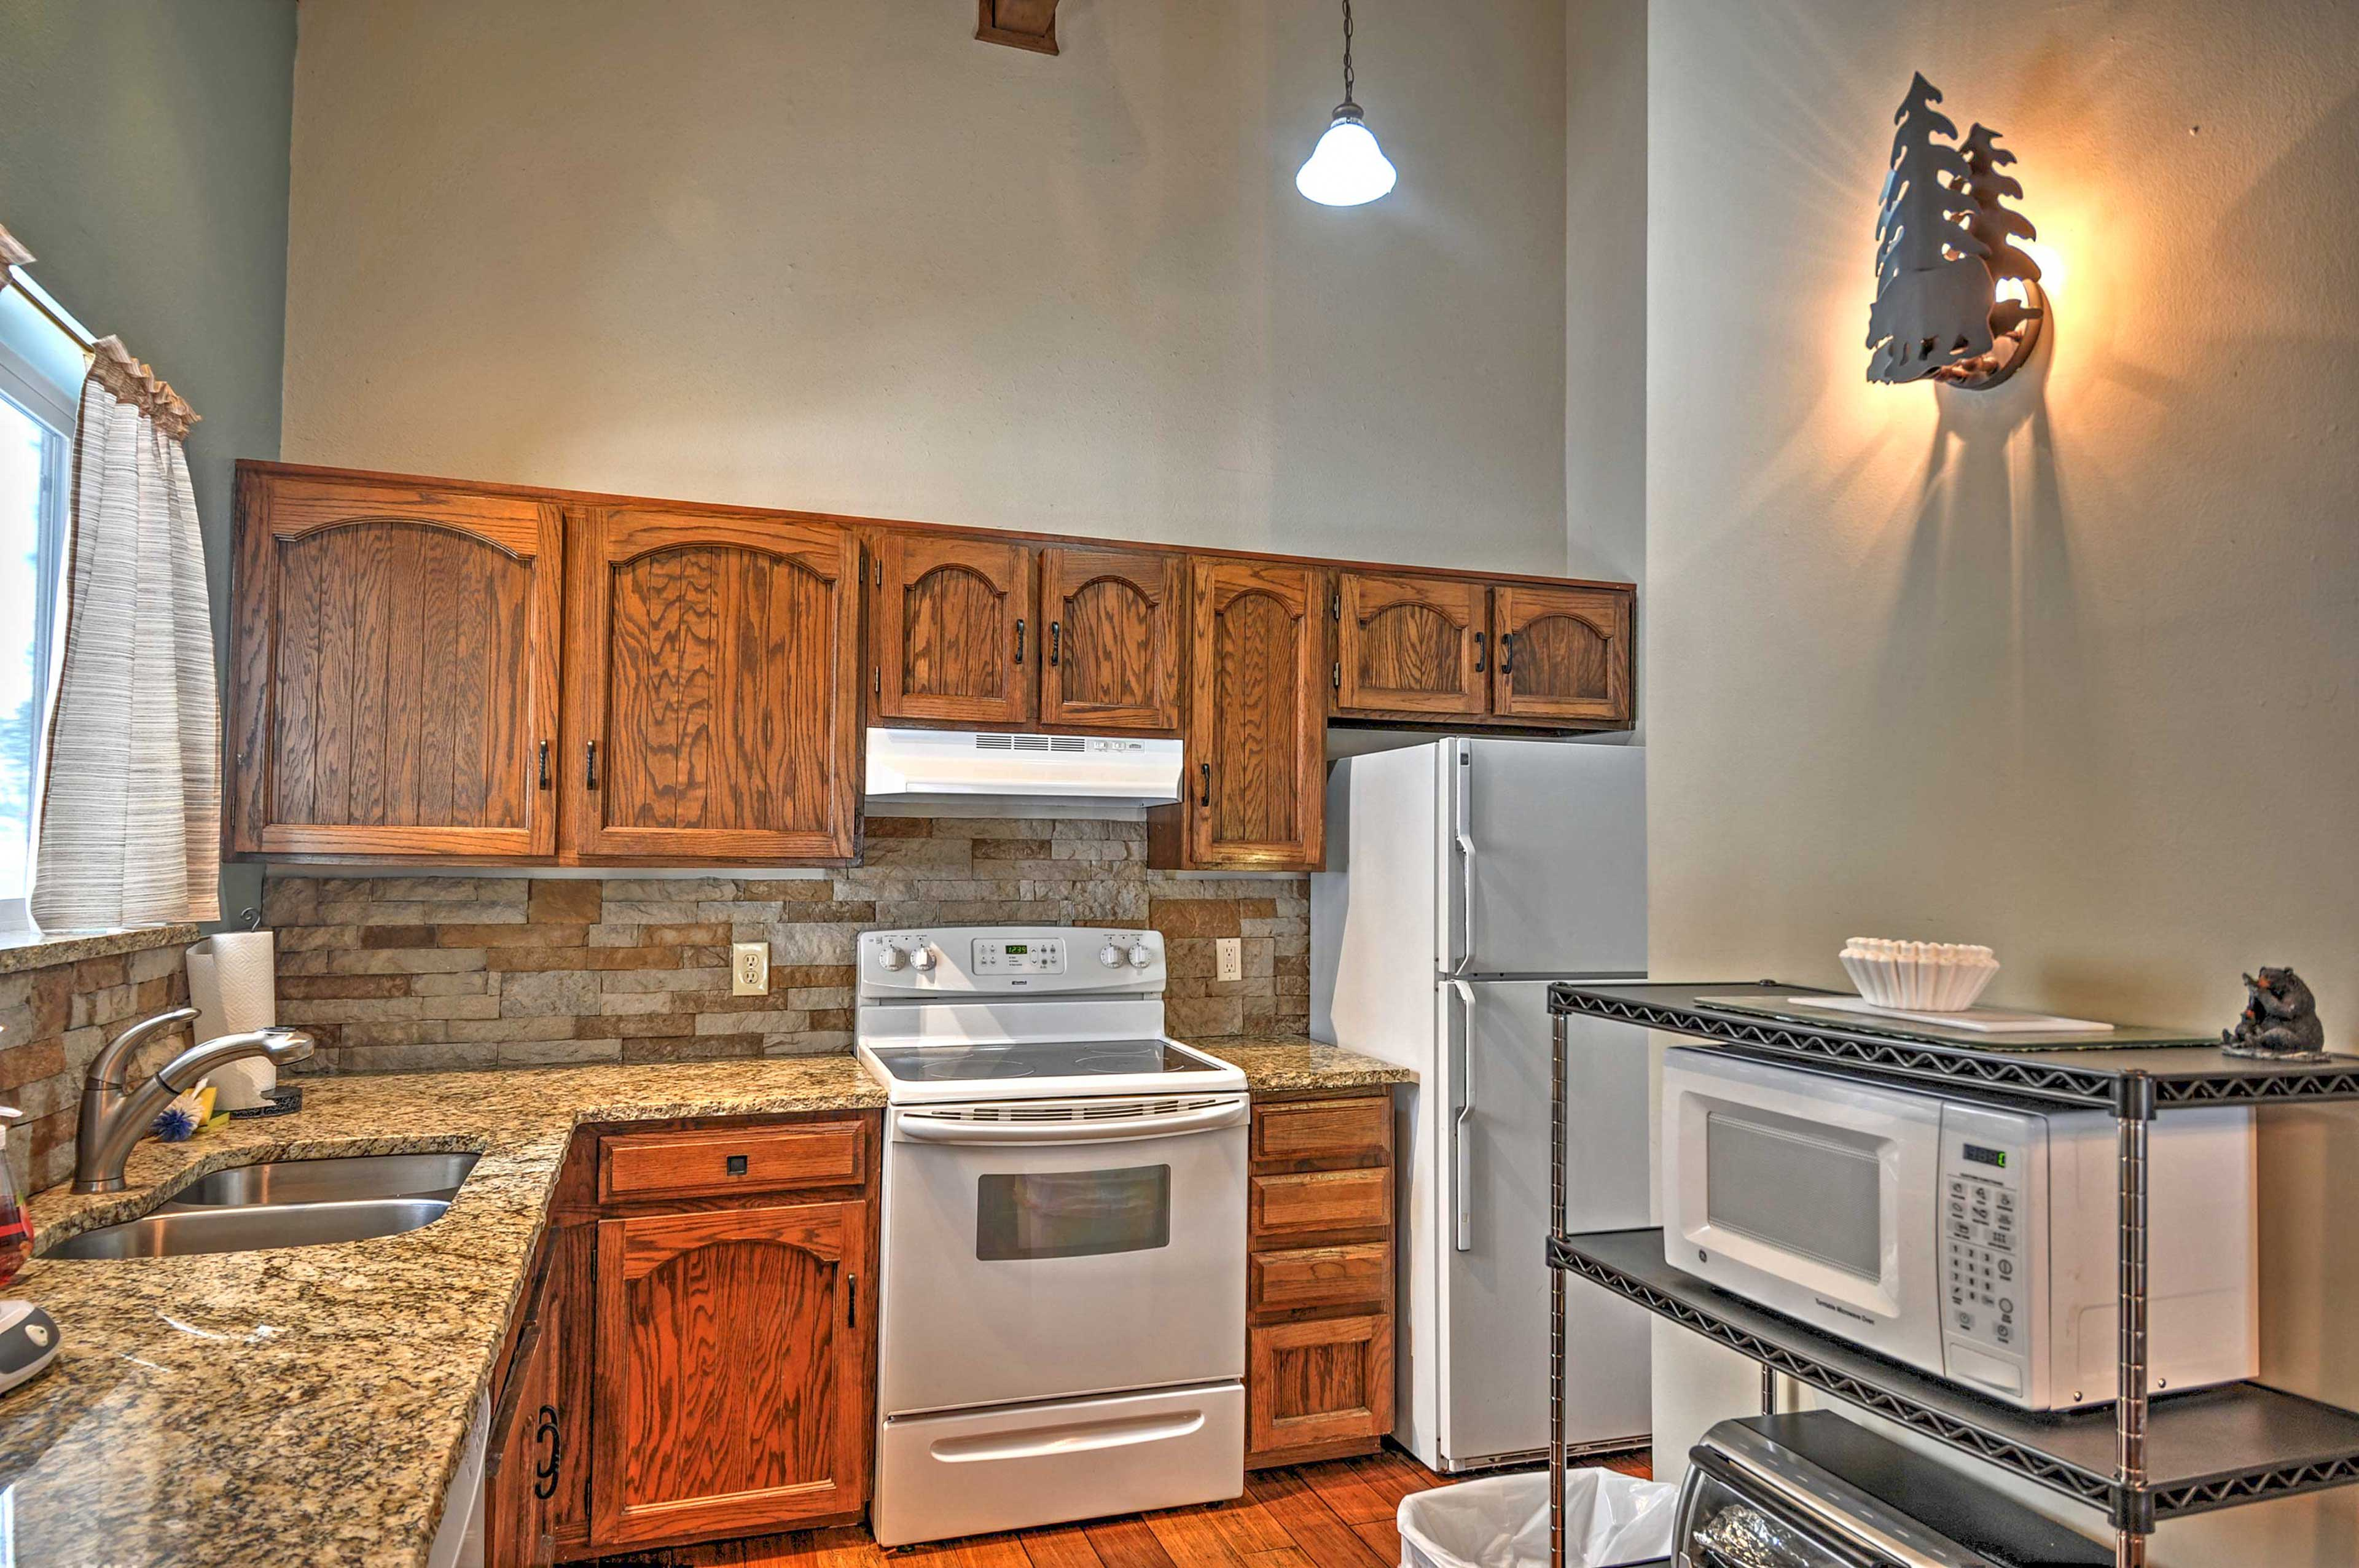 The fully-equipped kitchen is perfect for preparing tasty treats!